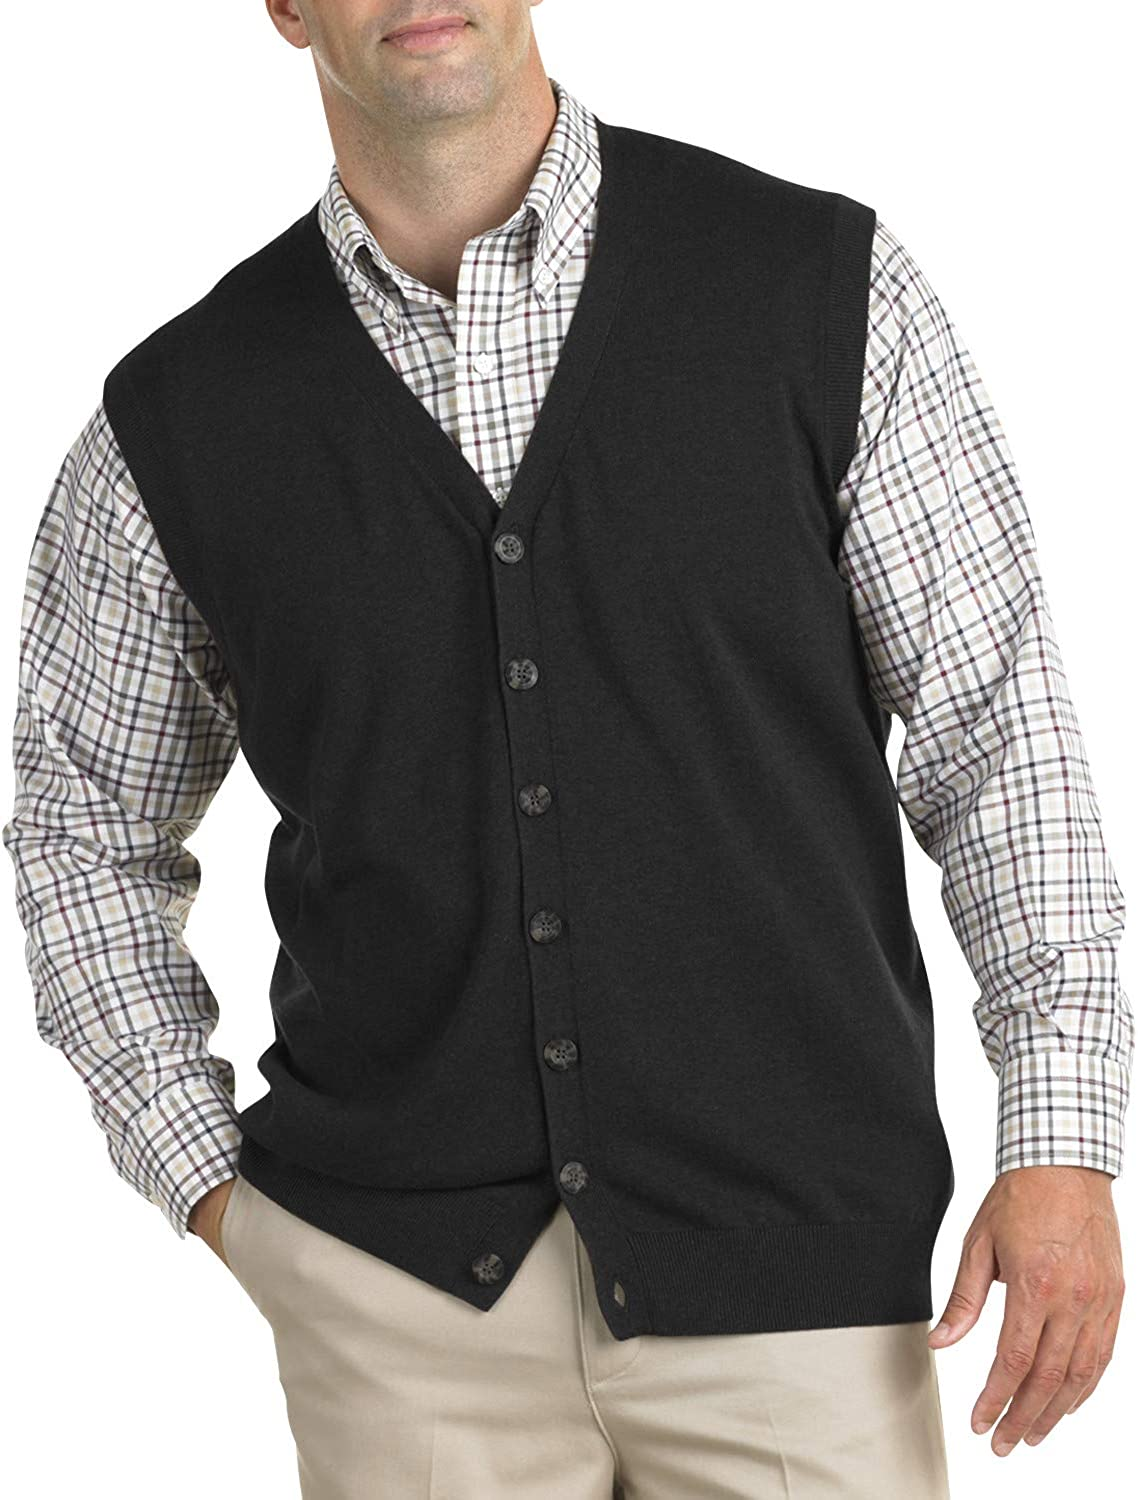 Oak Hill by DXL Big and Tall Button-Front Sweater Vest